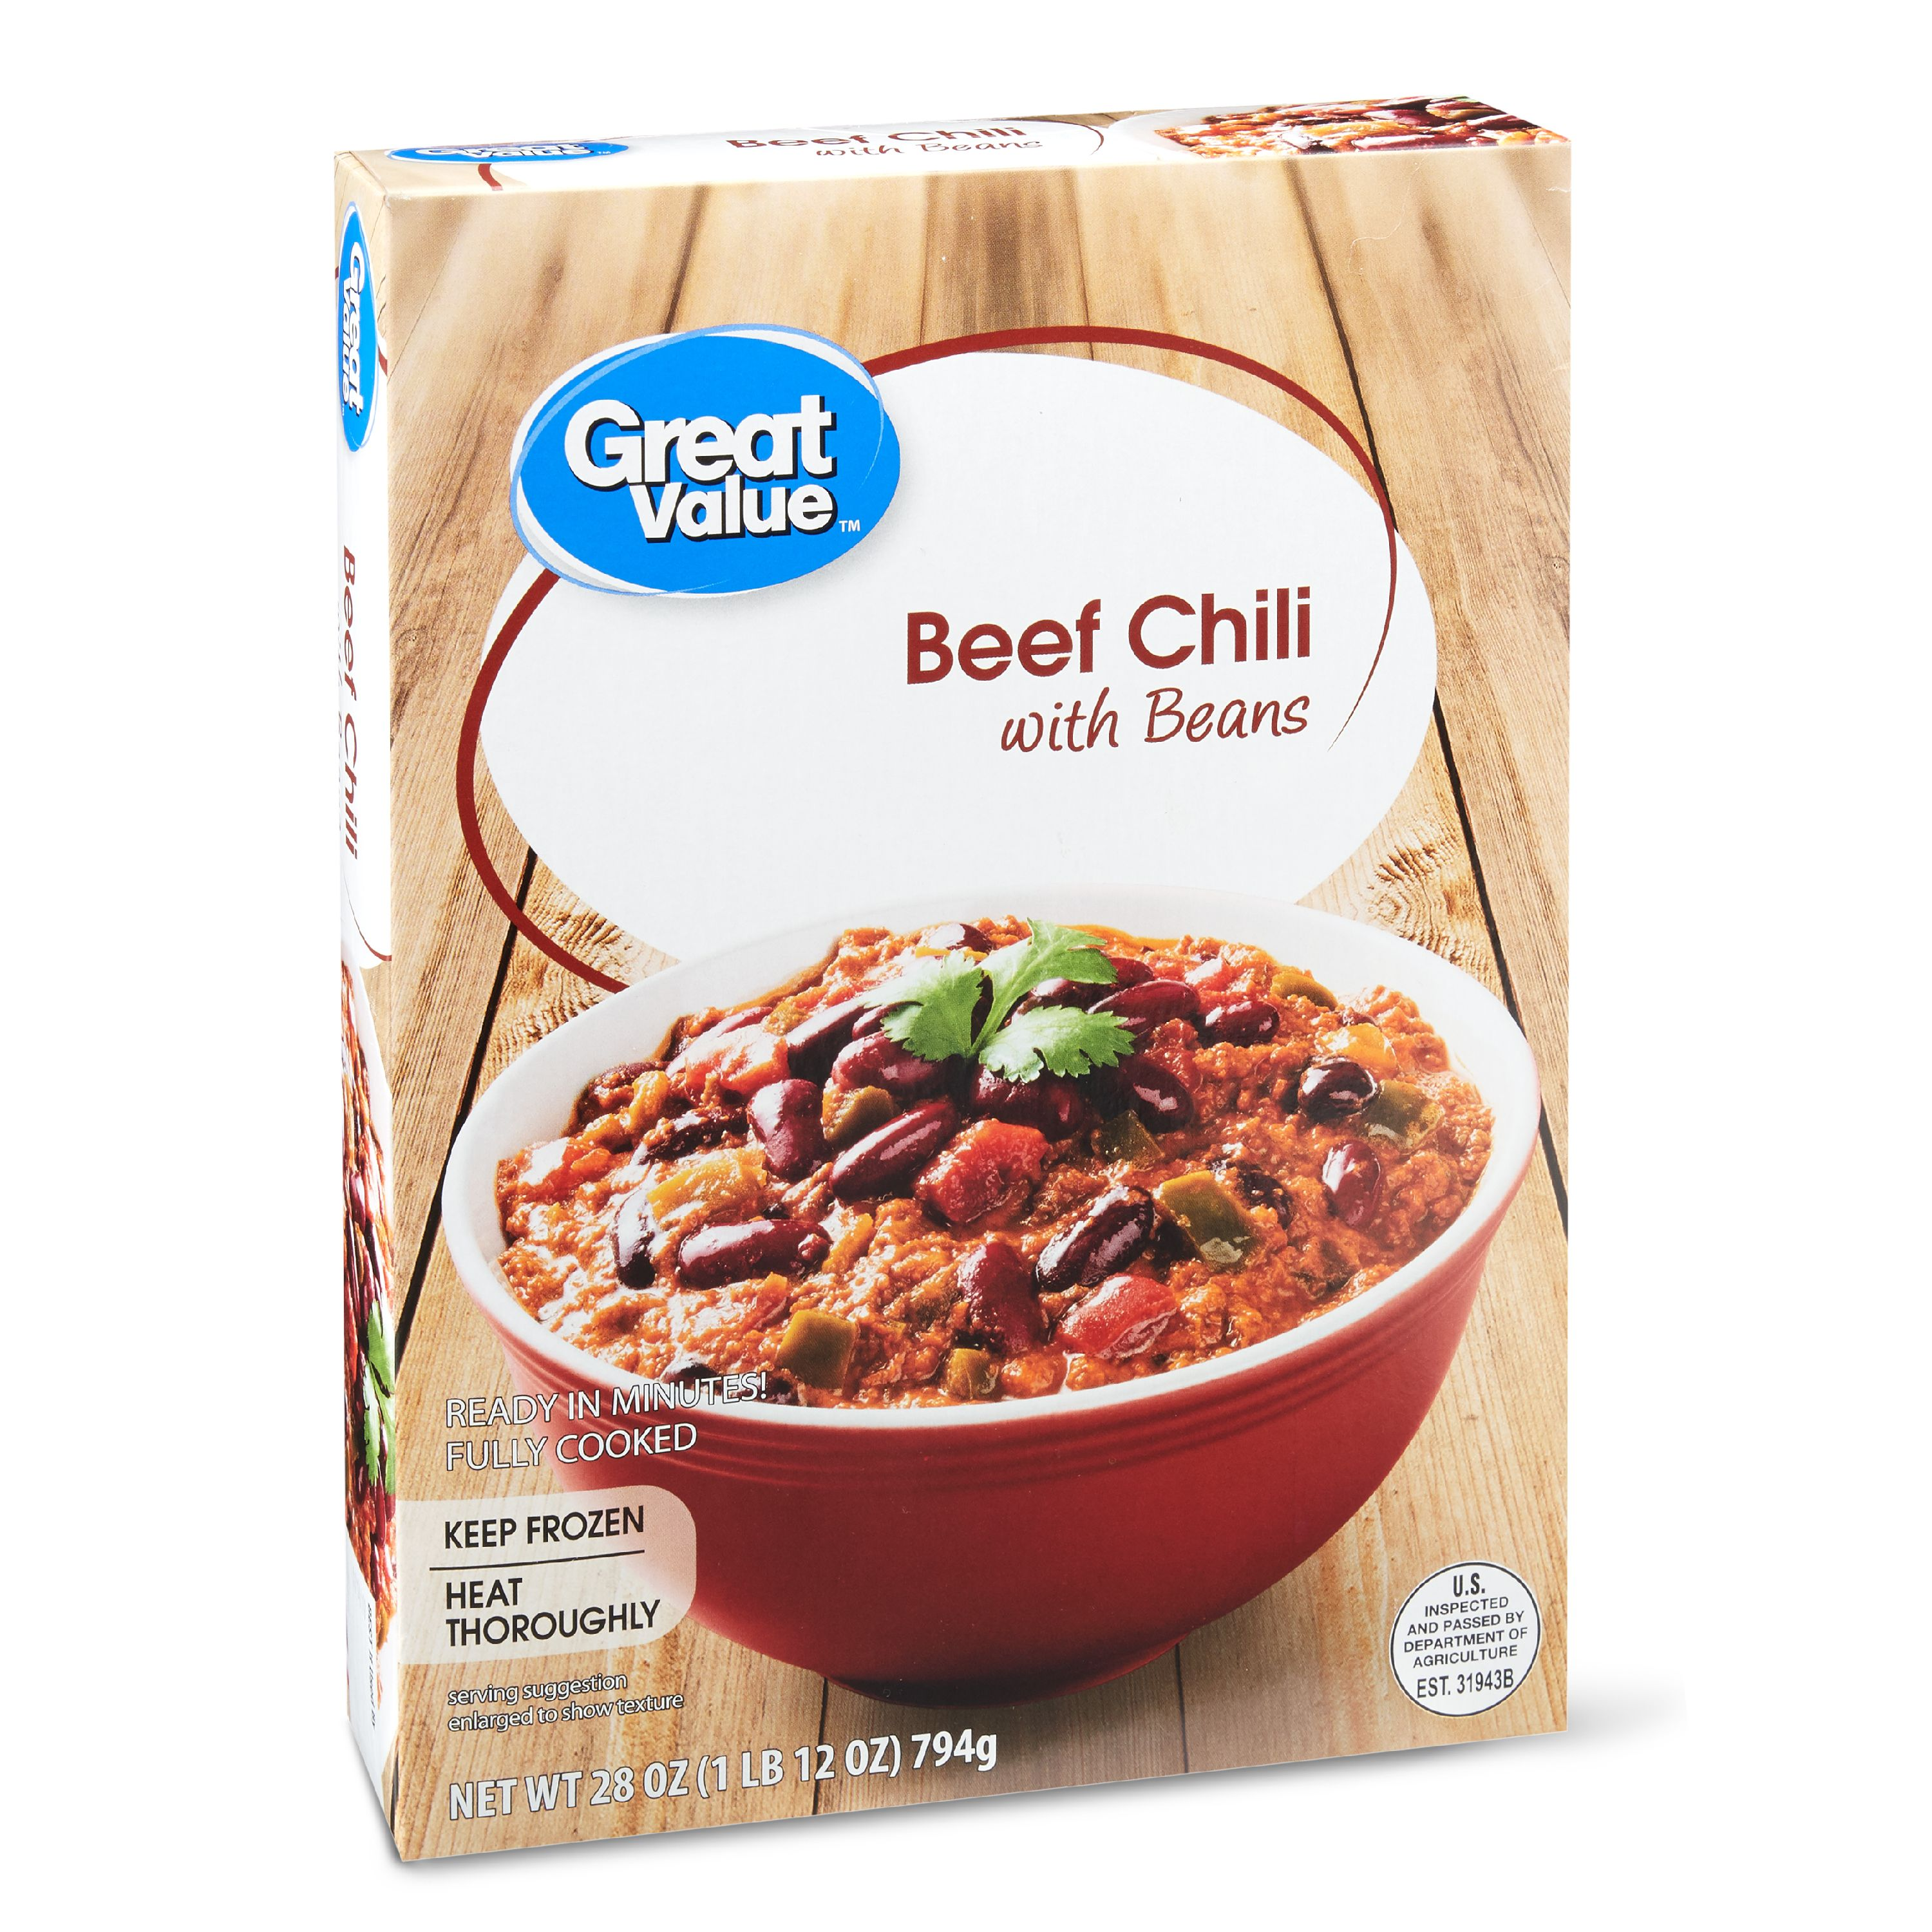 Great Value Frozen Beef Chili with Beans, 28 oz